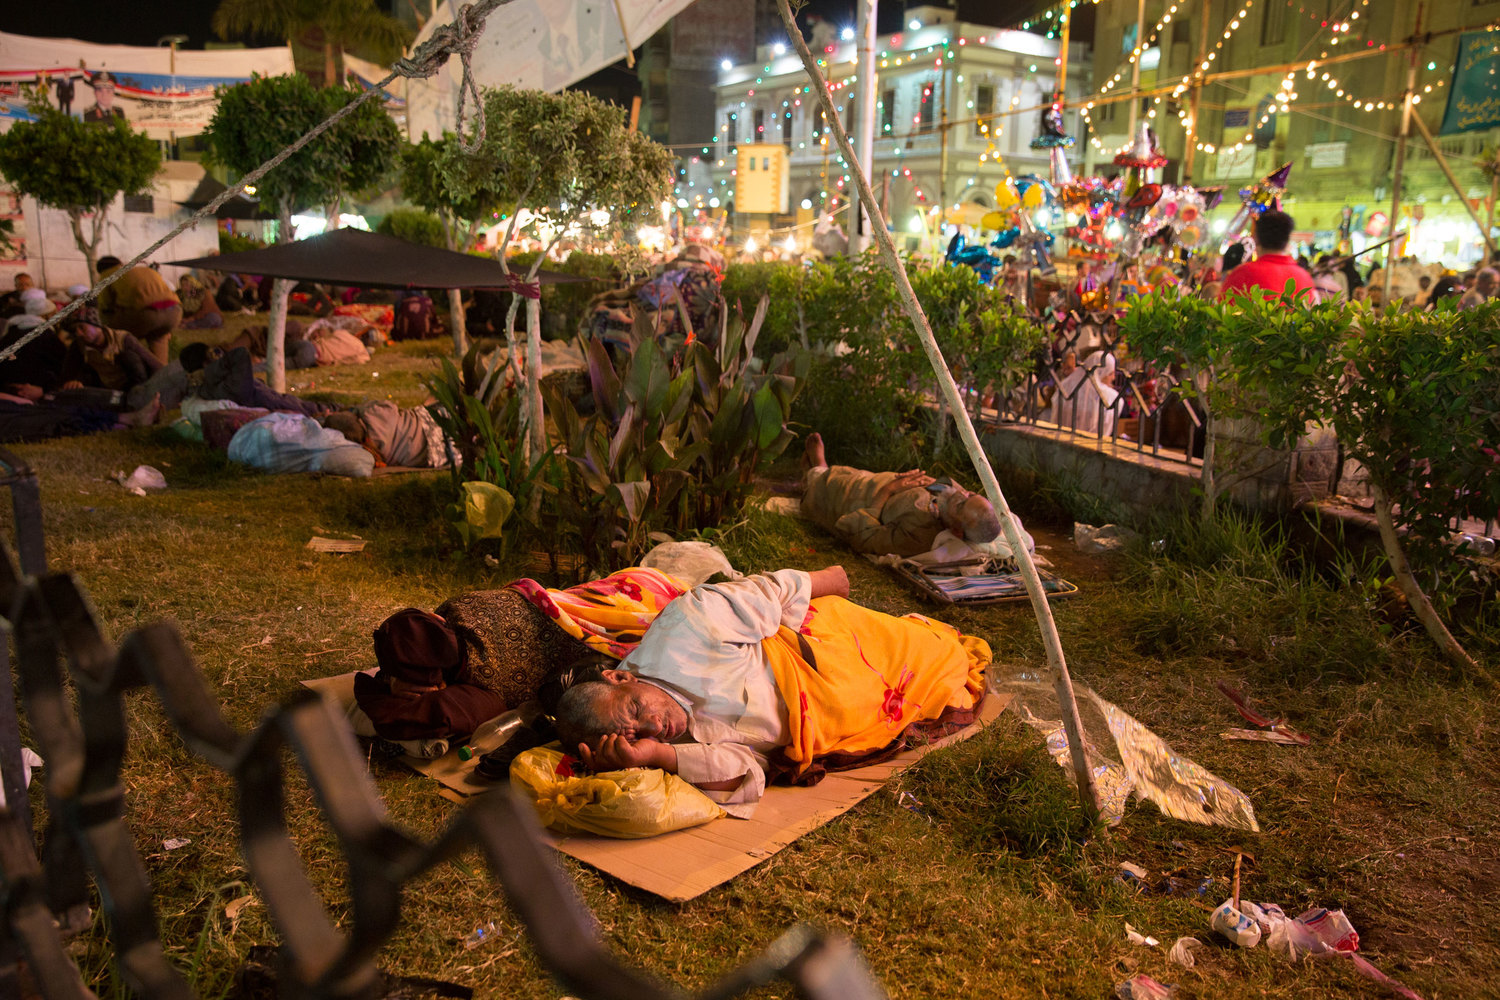 An elderly couple sleeps in a small park surrounded by the Sayeda Zeinab moulid festivities. The festival brings thousands of people from all over the country who often live and sleep in the neighborhood streets during the entire festival.